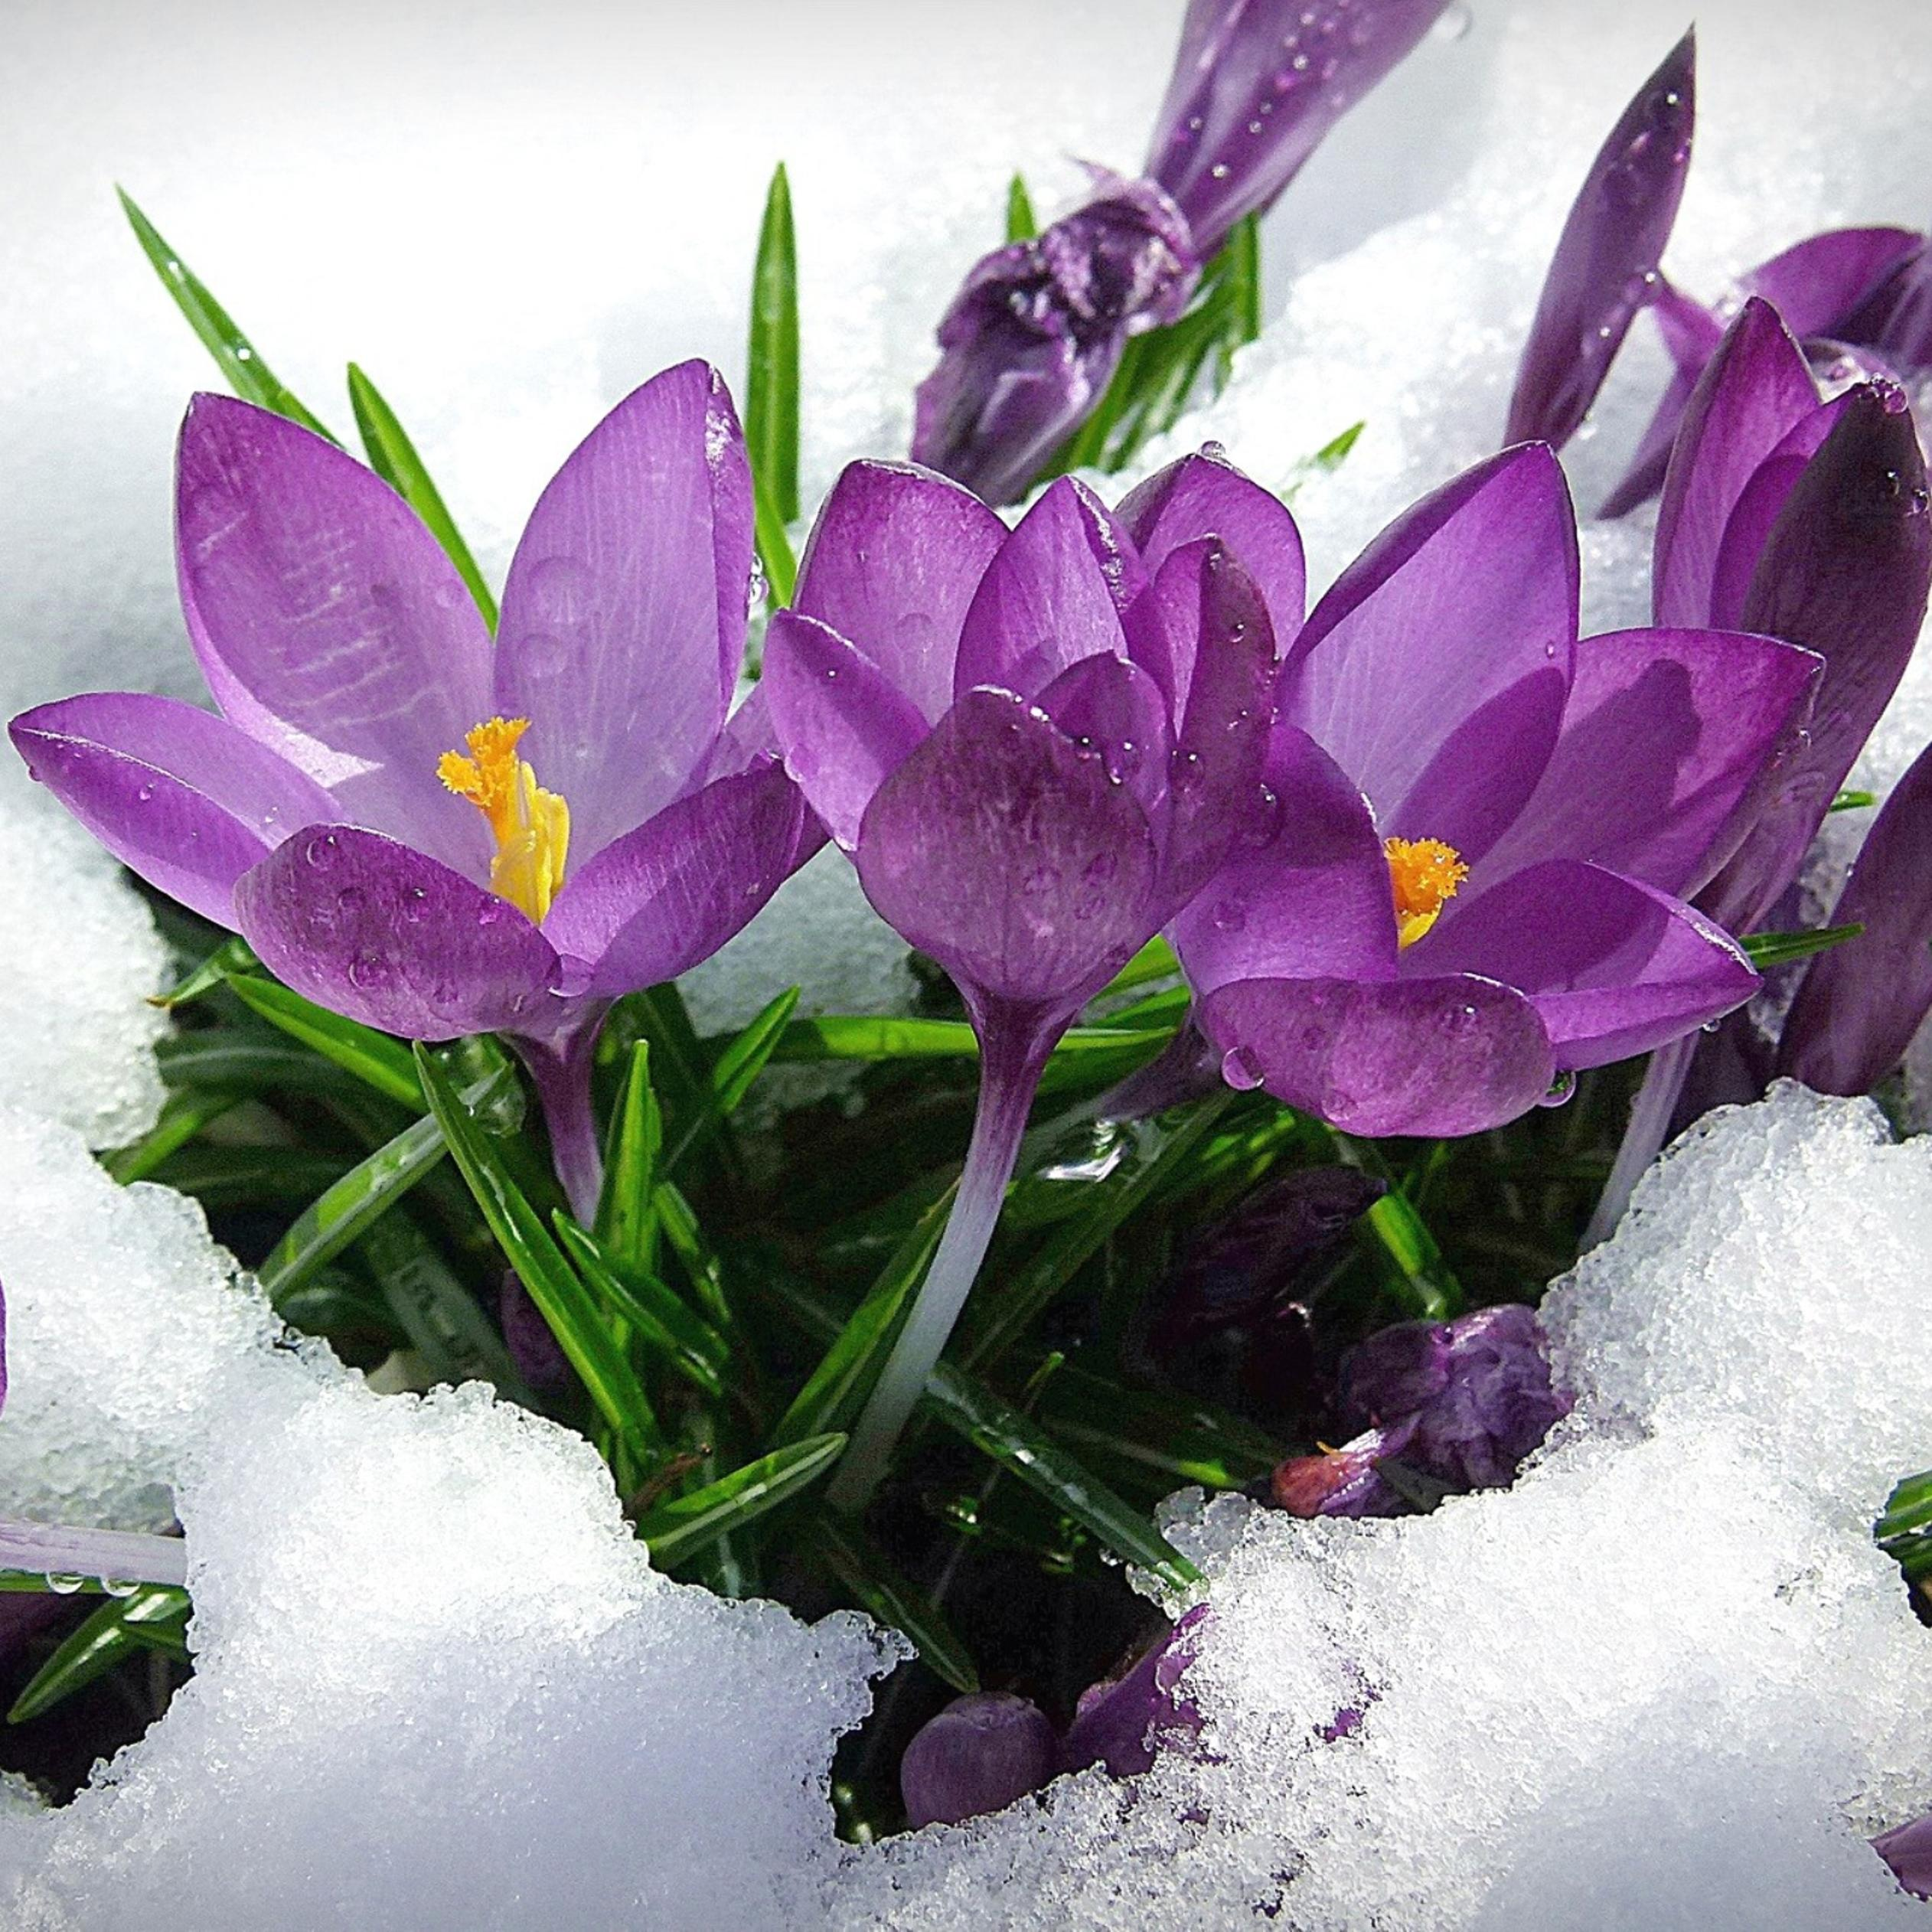 Purple Spring Flowers In The Snow